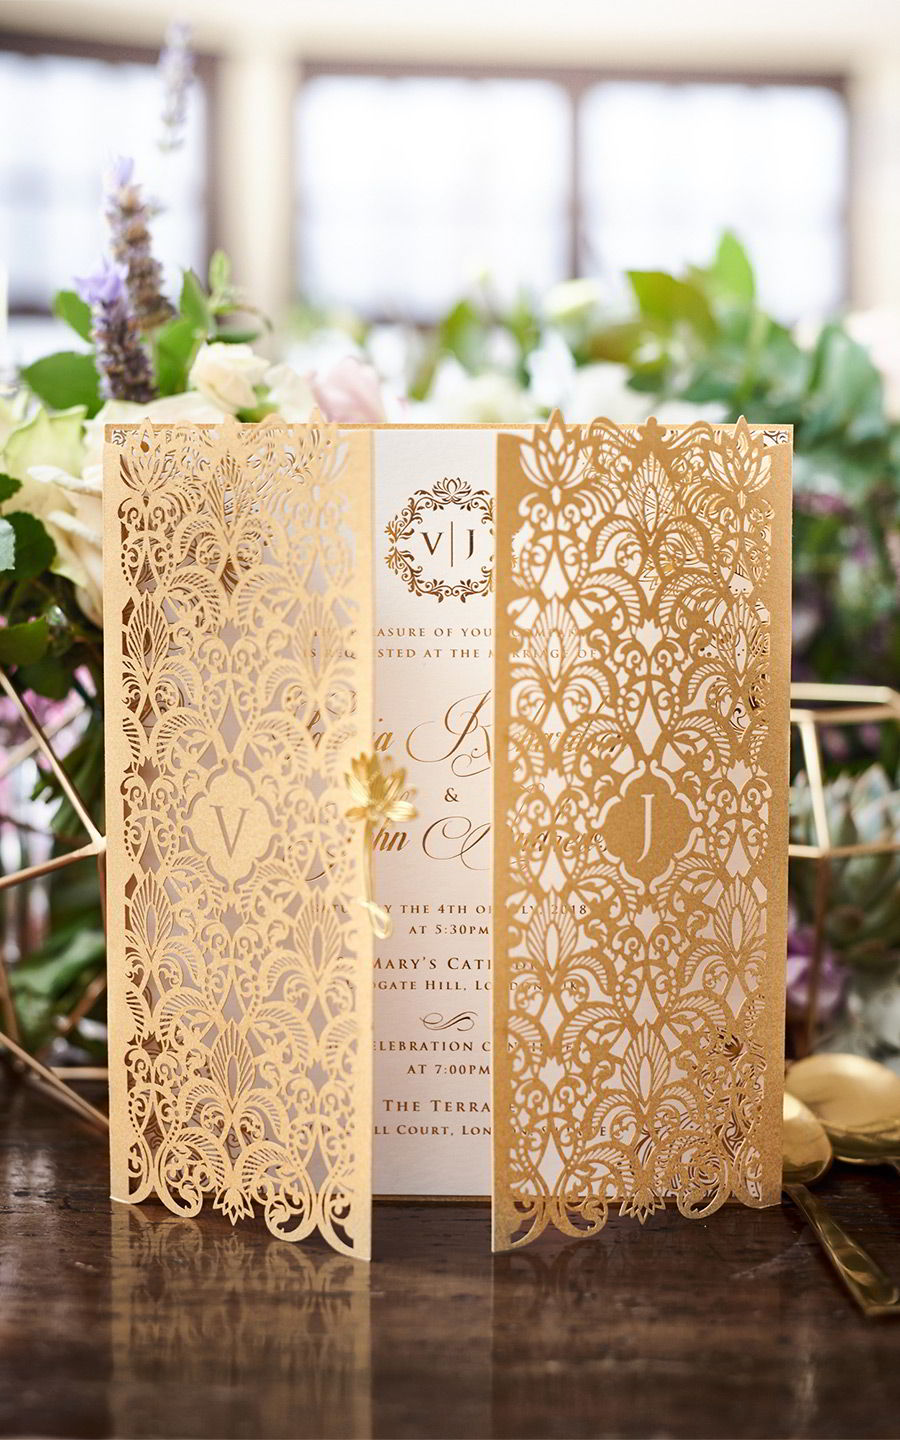 lavender field wedding photo shoot adorn invitations purple gold boho luxe inspiration filigree laser cut invite